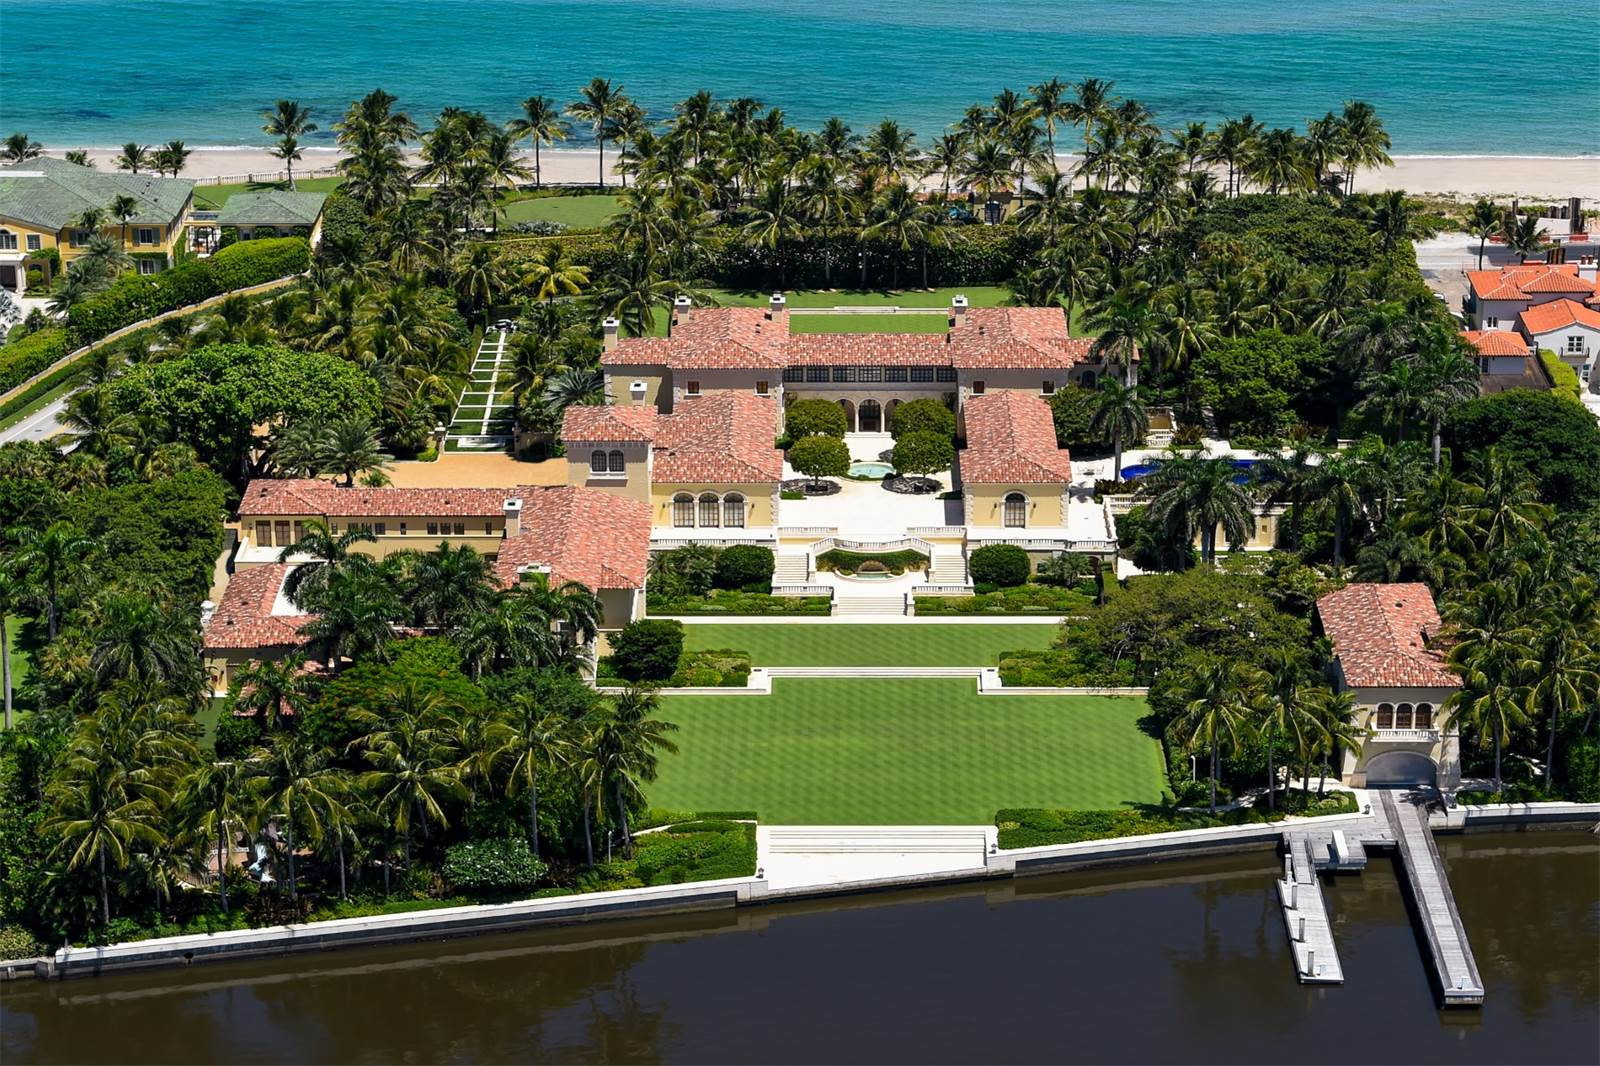 Il Palmetto (Palm Beach, Florida) – 129 millones de euros